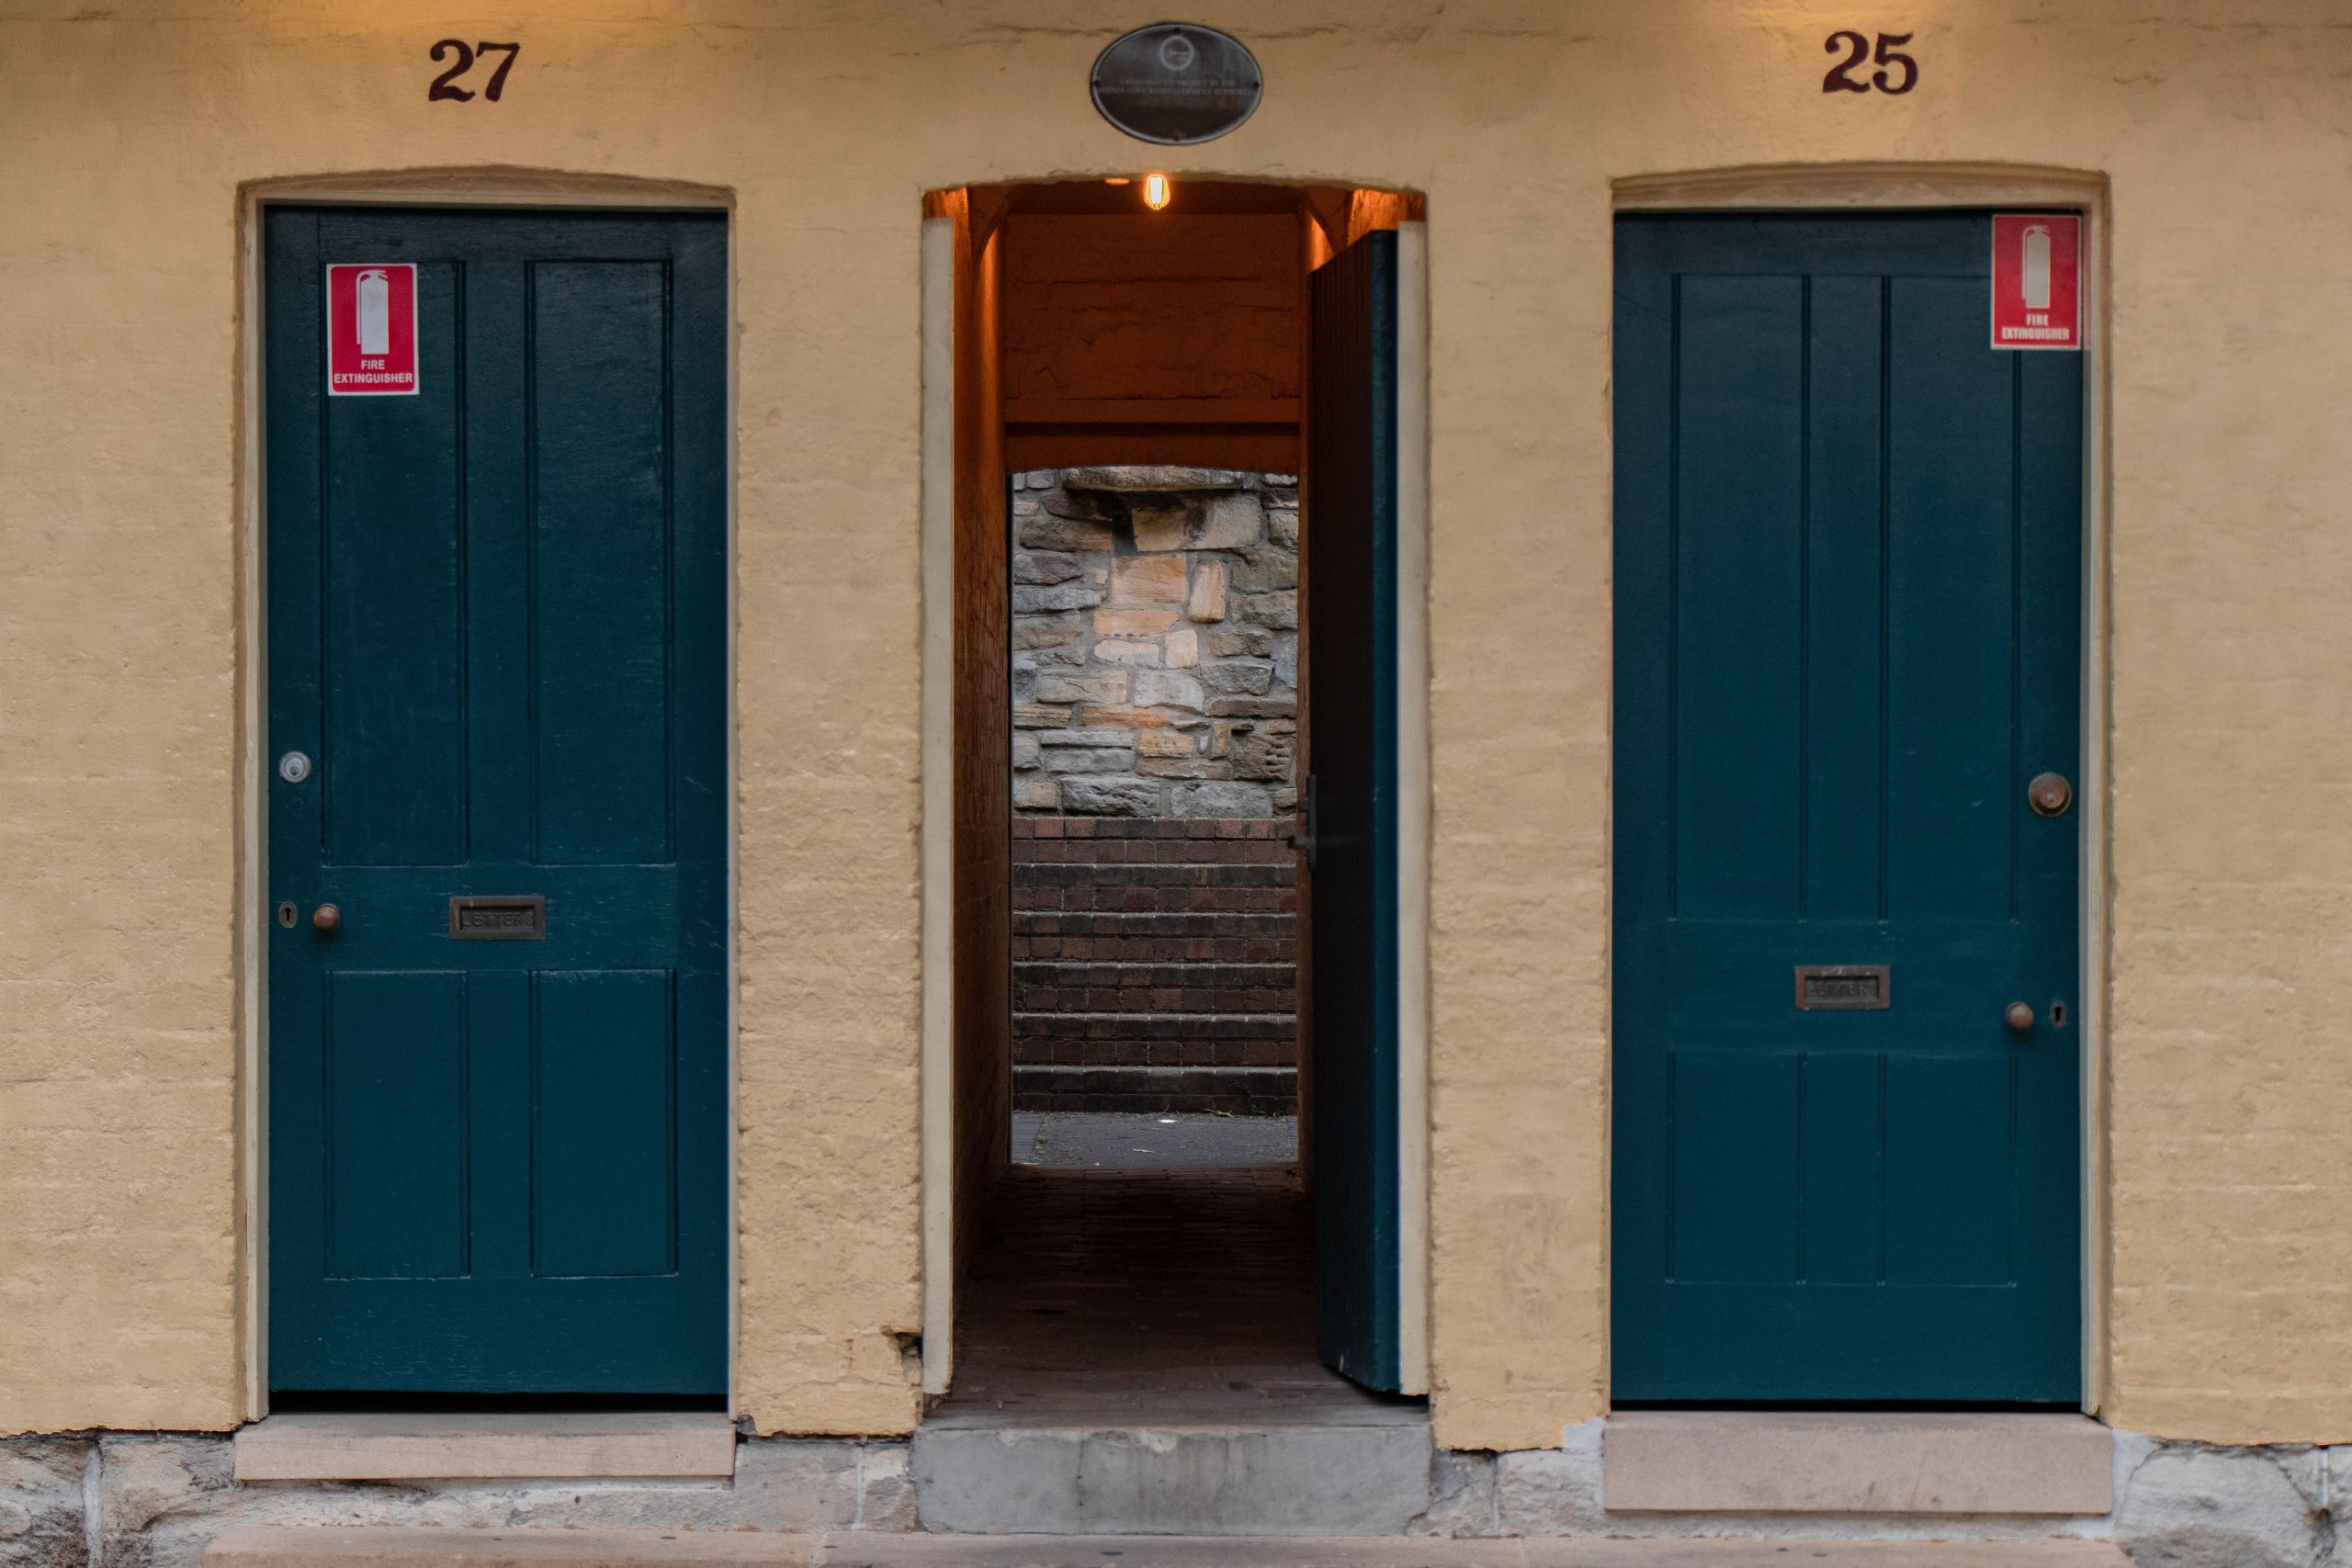 No wrong door: the case for holistic approaches to alcohol, other drugs and mental health